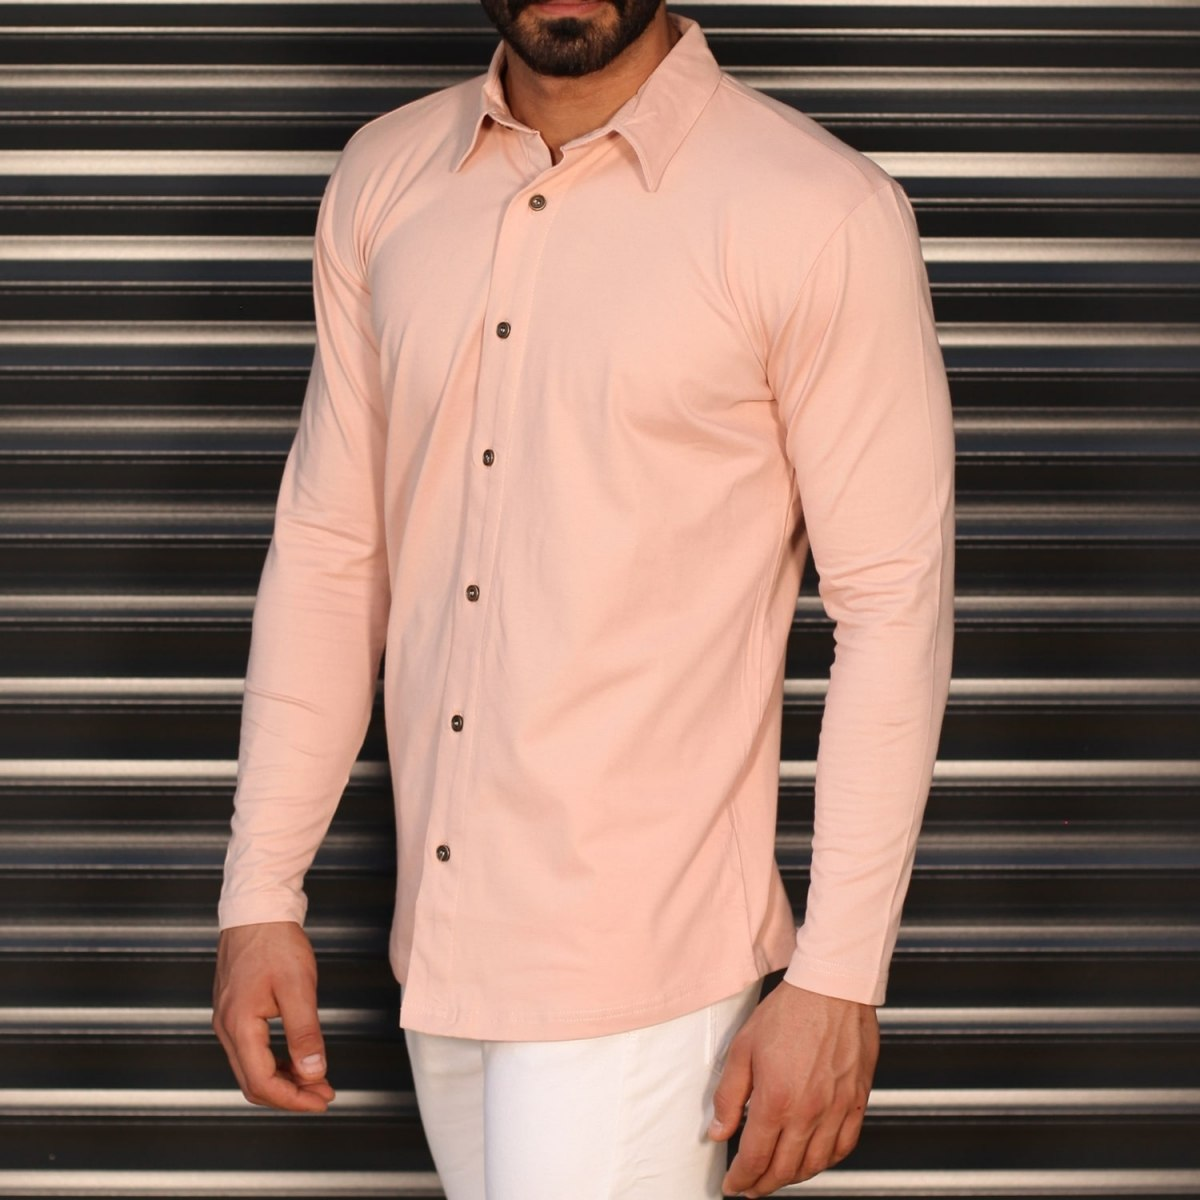 Men's Regular Long Sleeve Casual Shirt In Pink Mv Premium Brand - 2